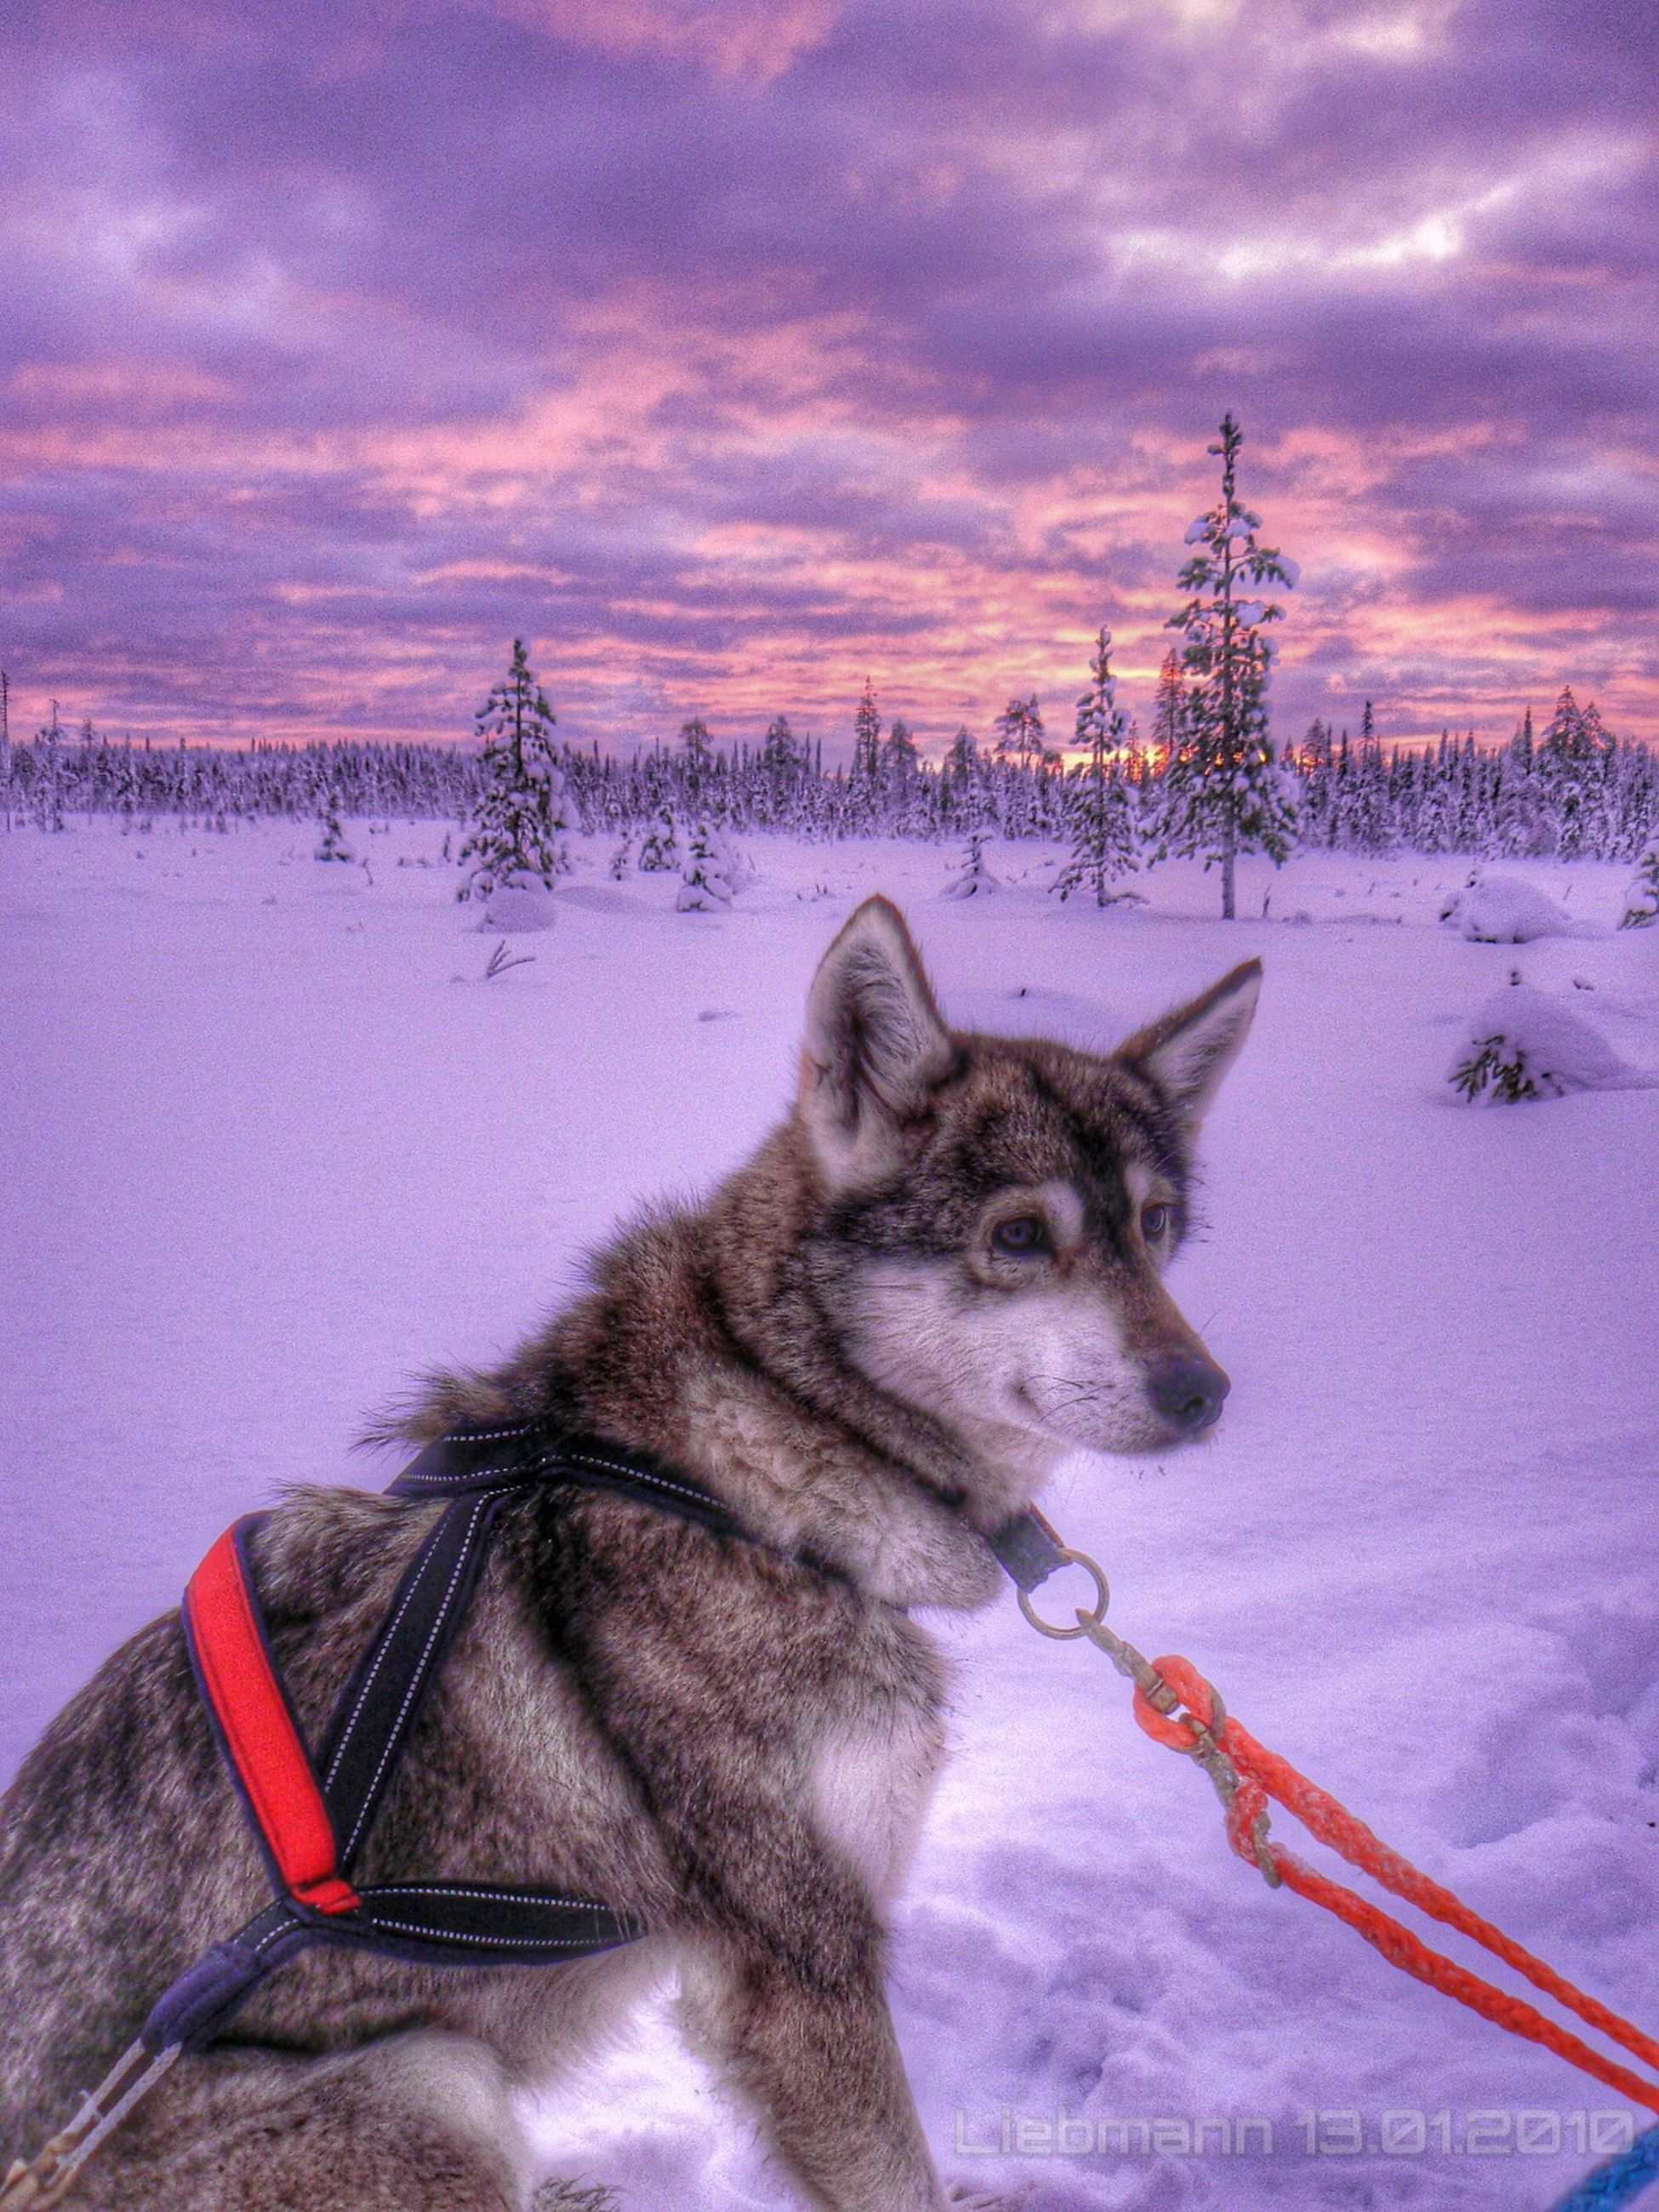 snow, cold temperature, winter, season, weather, domestic animals, pets, mammal, sky, covering, animal themes, one animal, cloud - sky, dog, frozen, field, nature, landscape, bare tree, covered